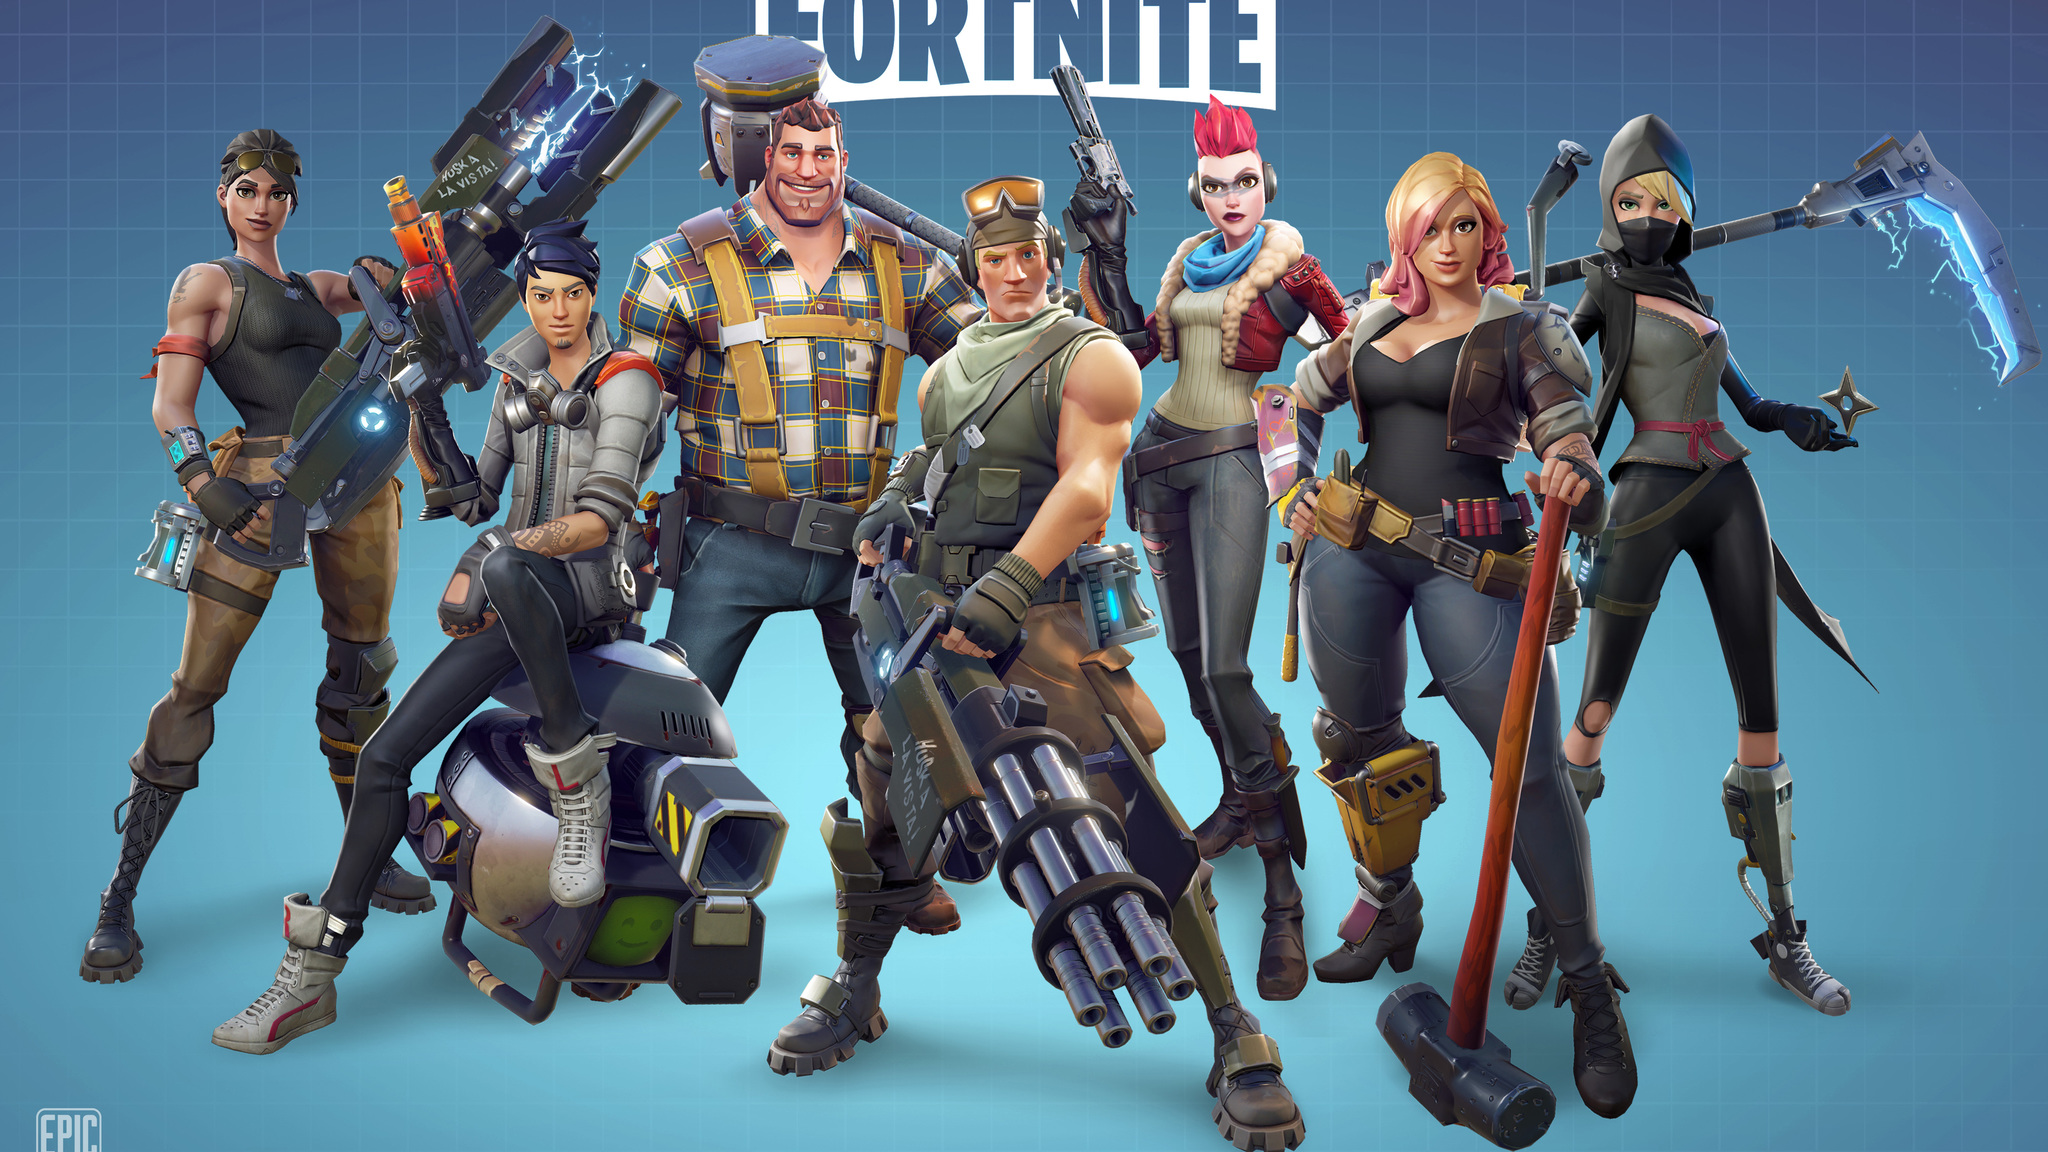 Fortnite, hottest game out!